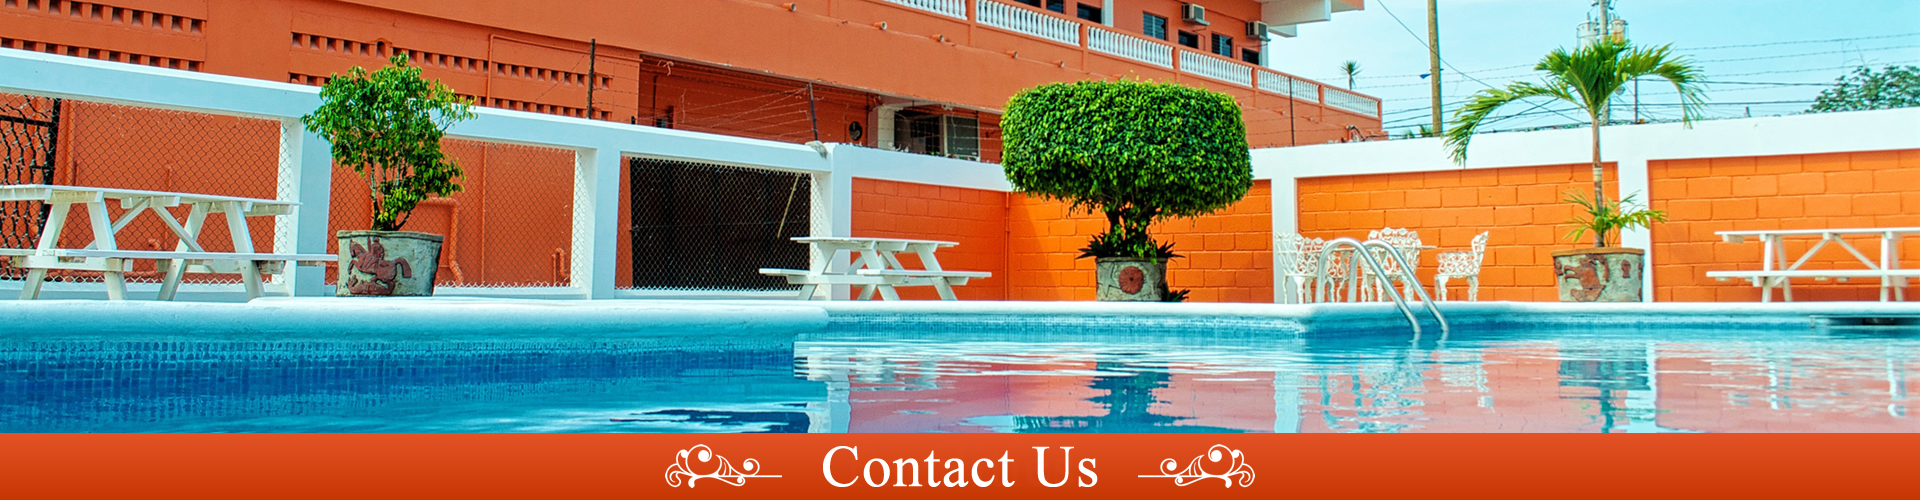 D-victoria-orange-walk-Belize-contact-us